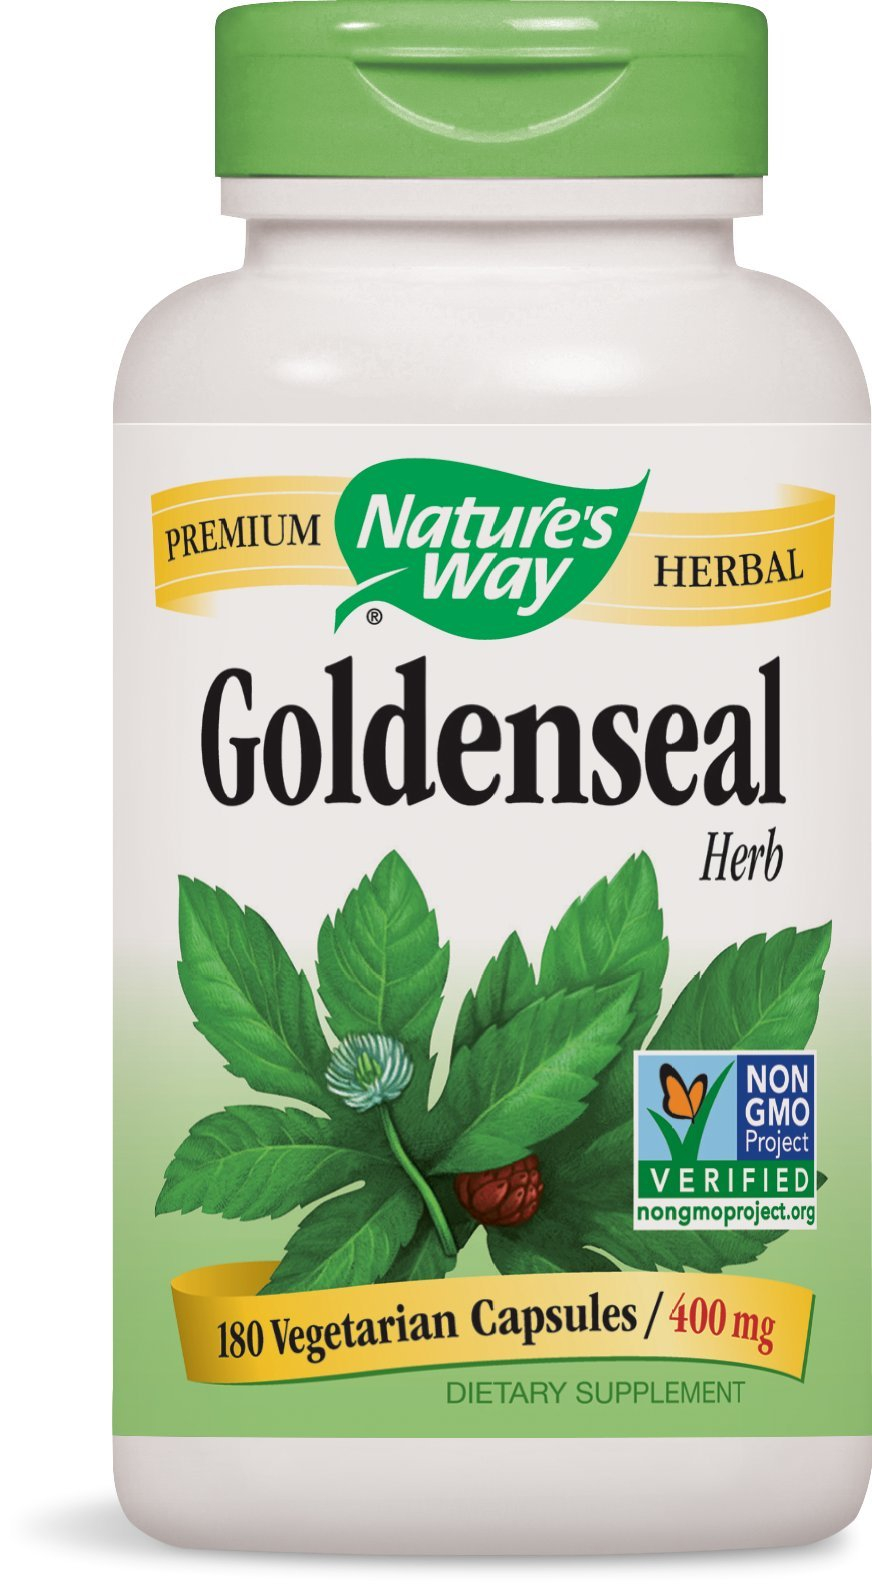 Nature's Way Goldenseal Herb, 400mg, 180-Capsules